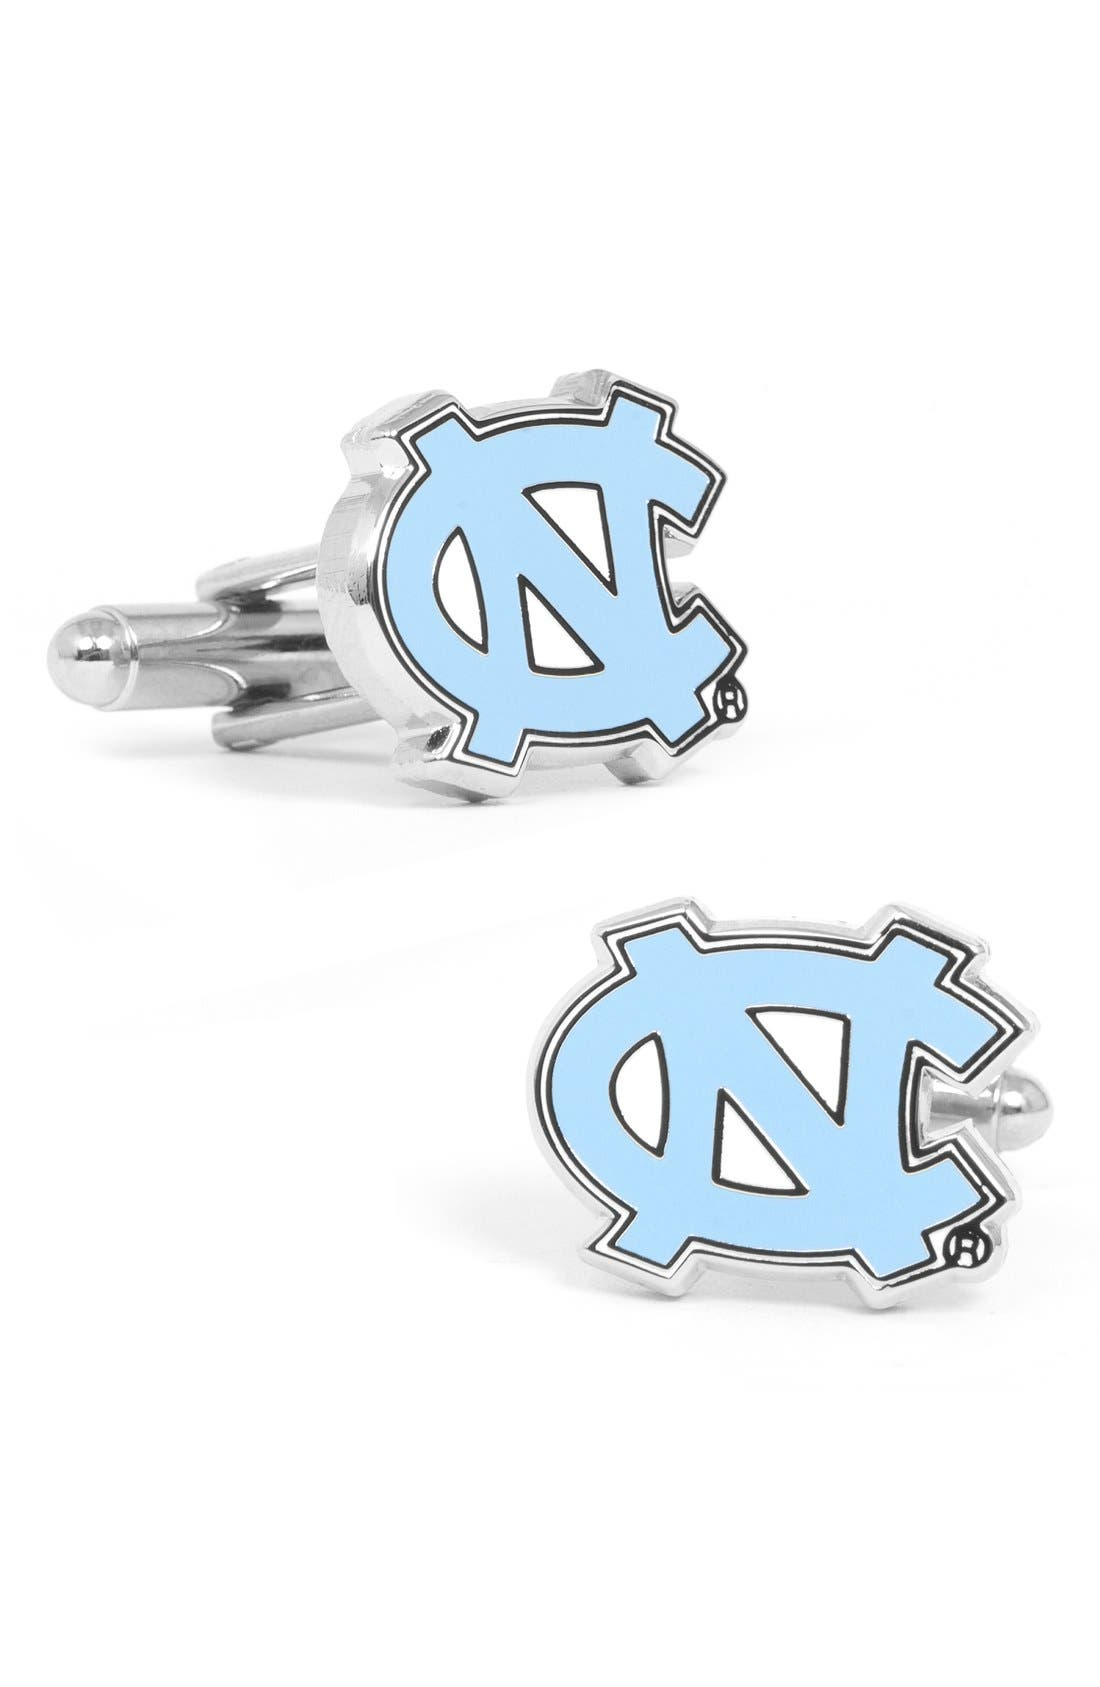 CUFFLINKS, INC. University of North Carolina Tar Heels Cuff Links